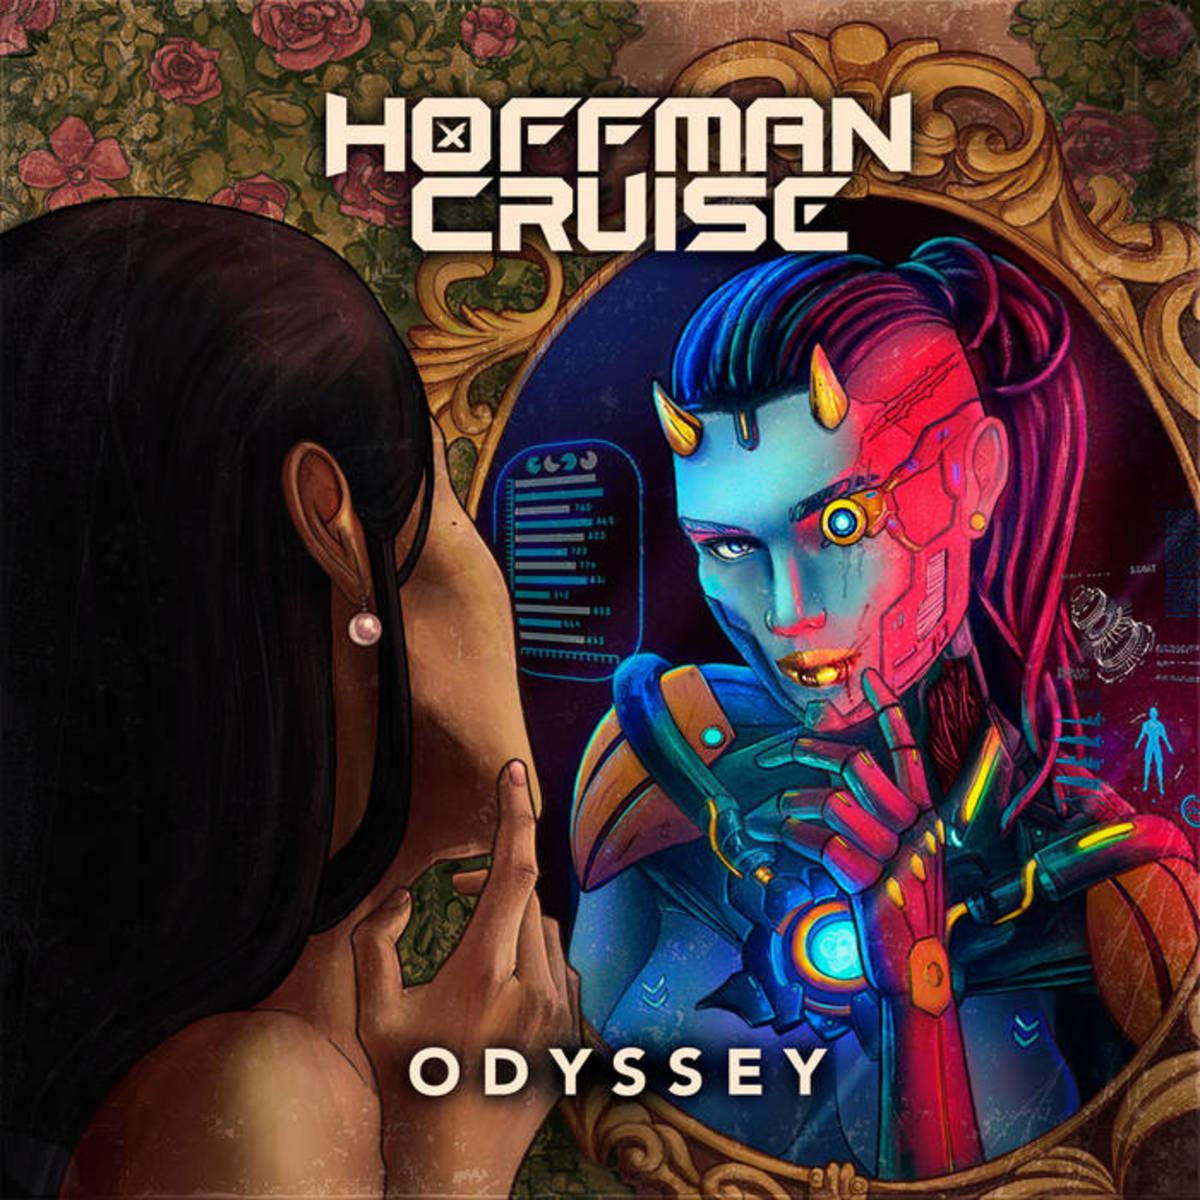 Synth Album Review: Hoffman Cruise,